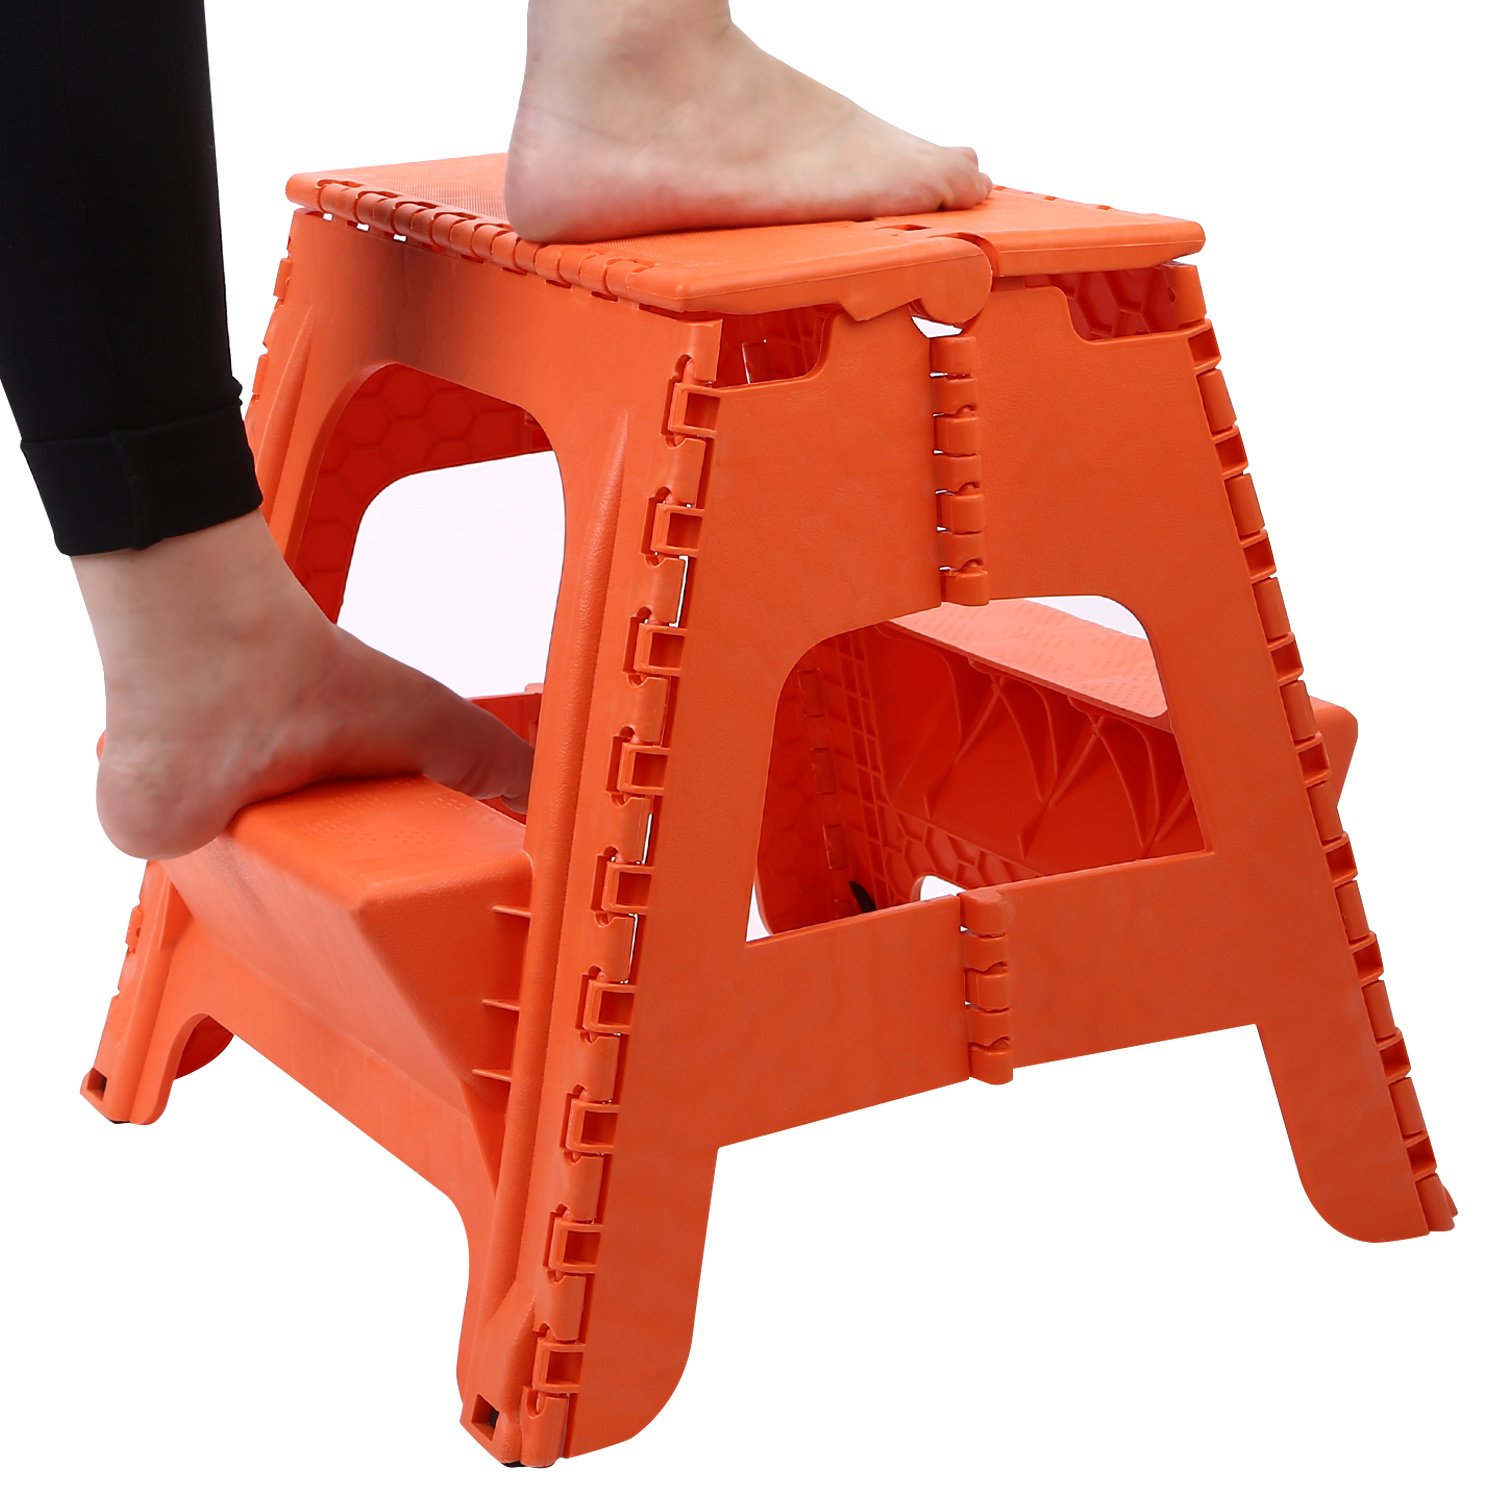 Maddott Two Step Ladder Durable Plastic Folding Stool 15 Inches Holds up to 350 lbs Orange-red Stool